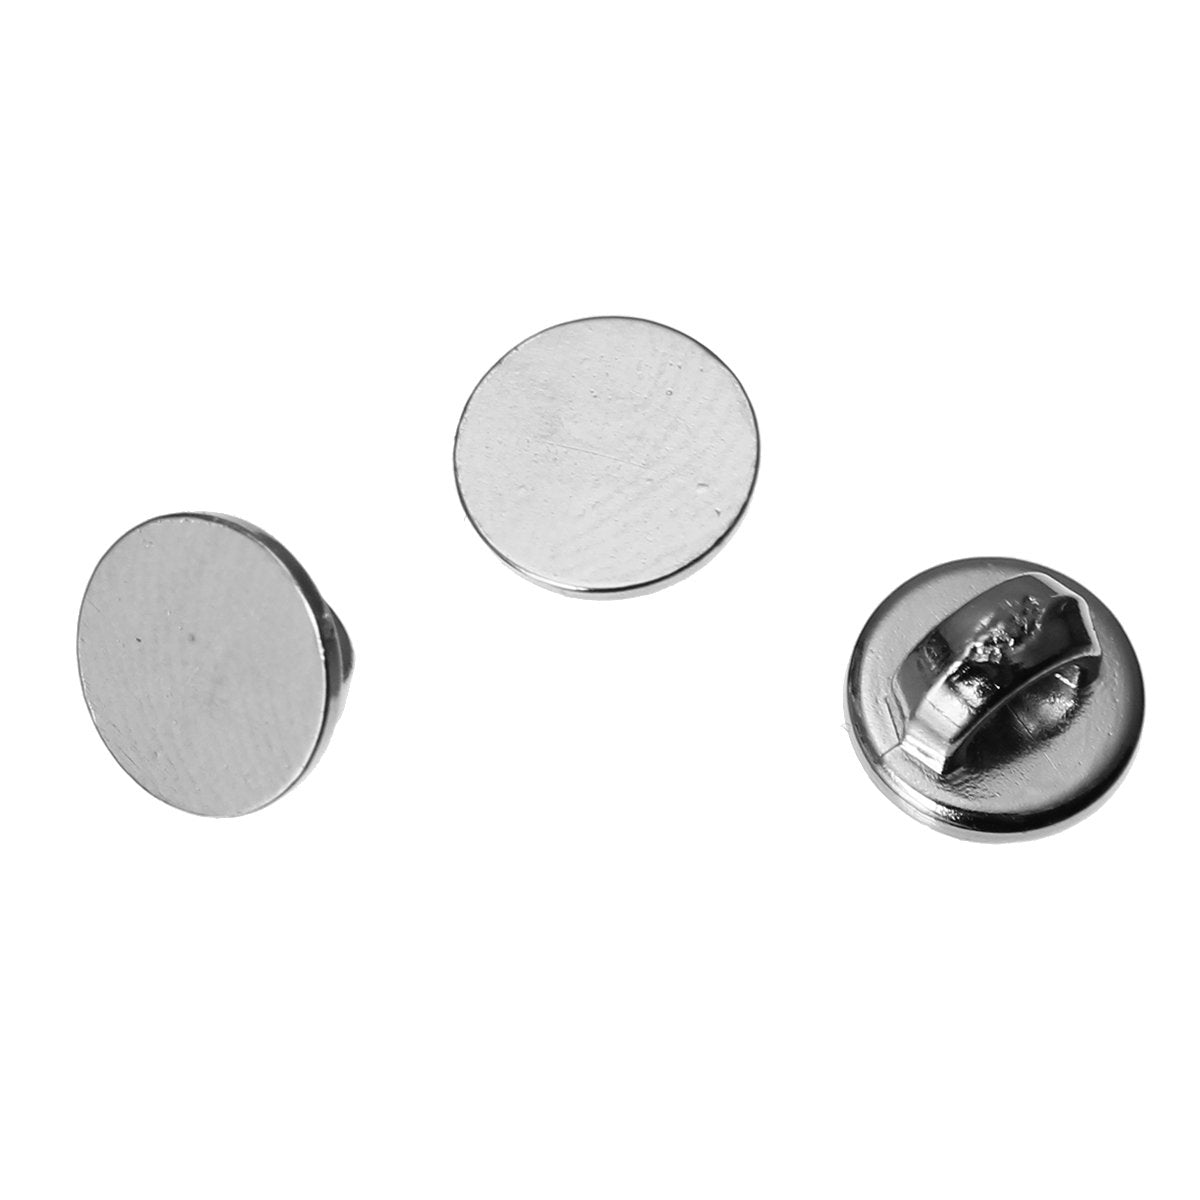 Silver Resin Buttons - 6mm (1/4 inch) - Shank